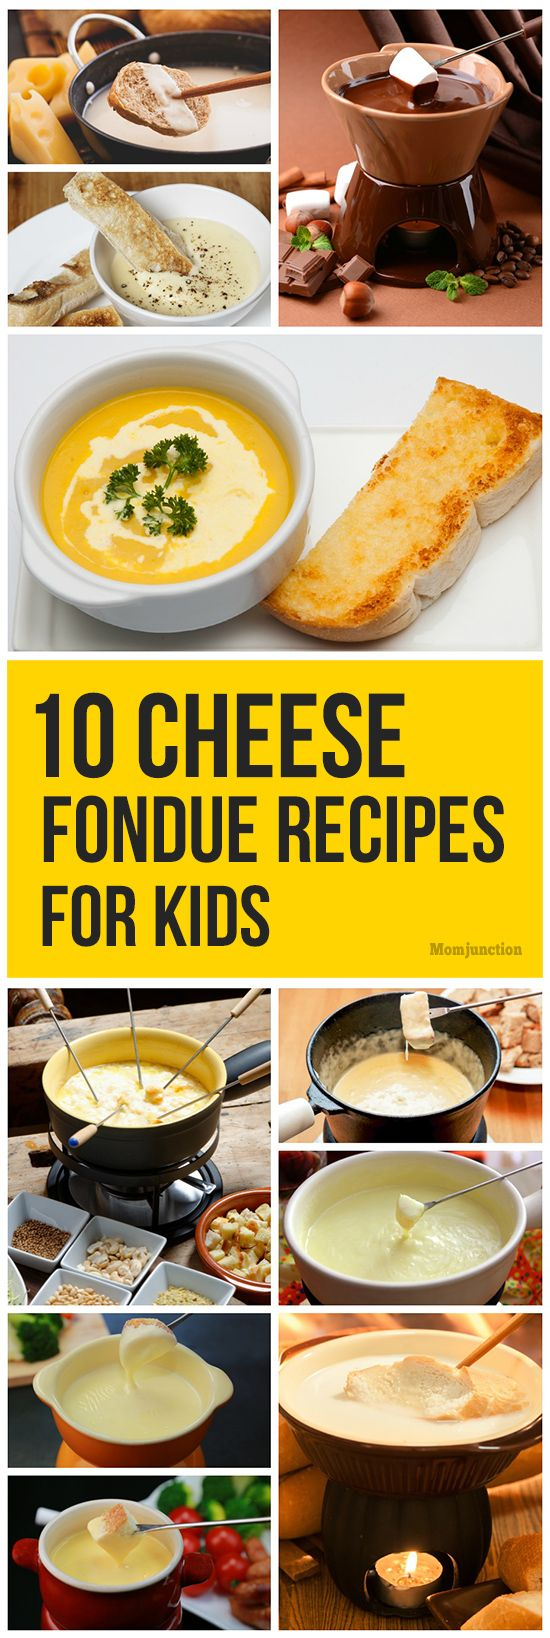 Top 10 Cheese Fondue Recipes For Kids To Try #fondueideas